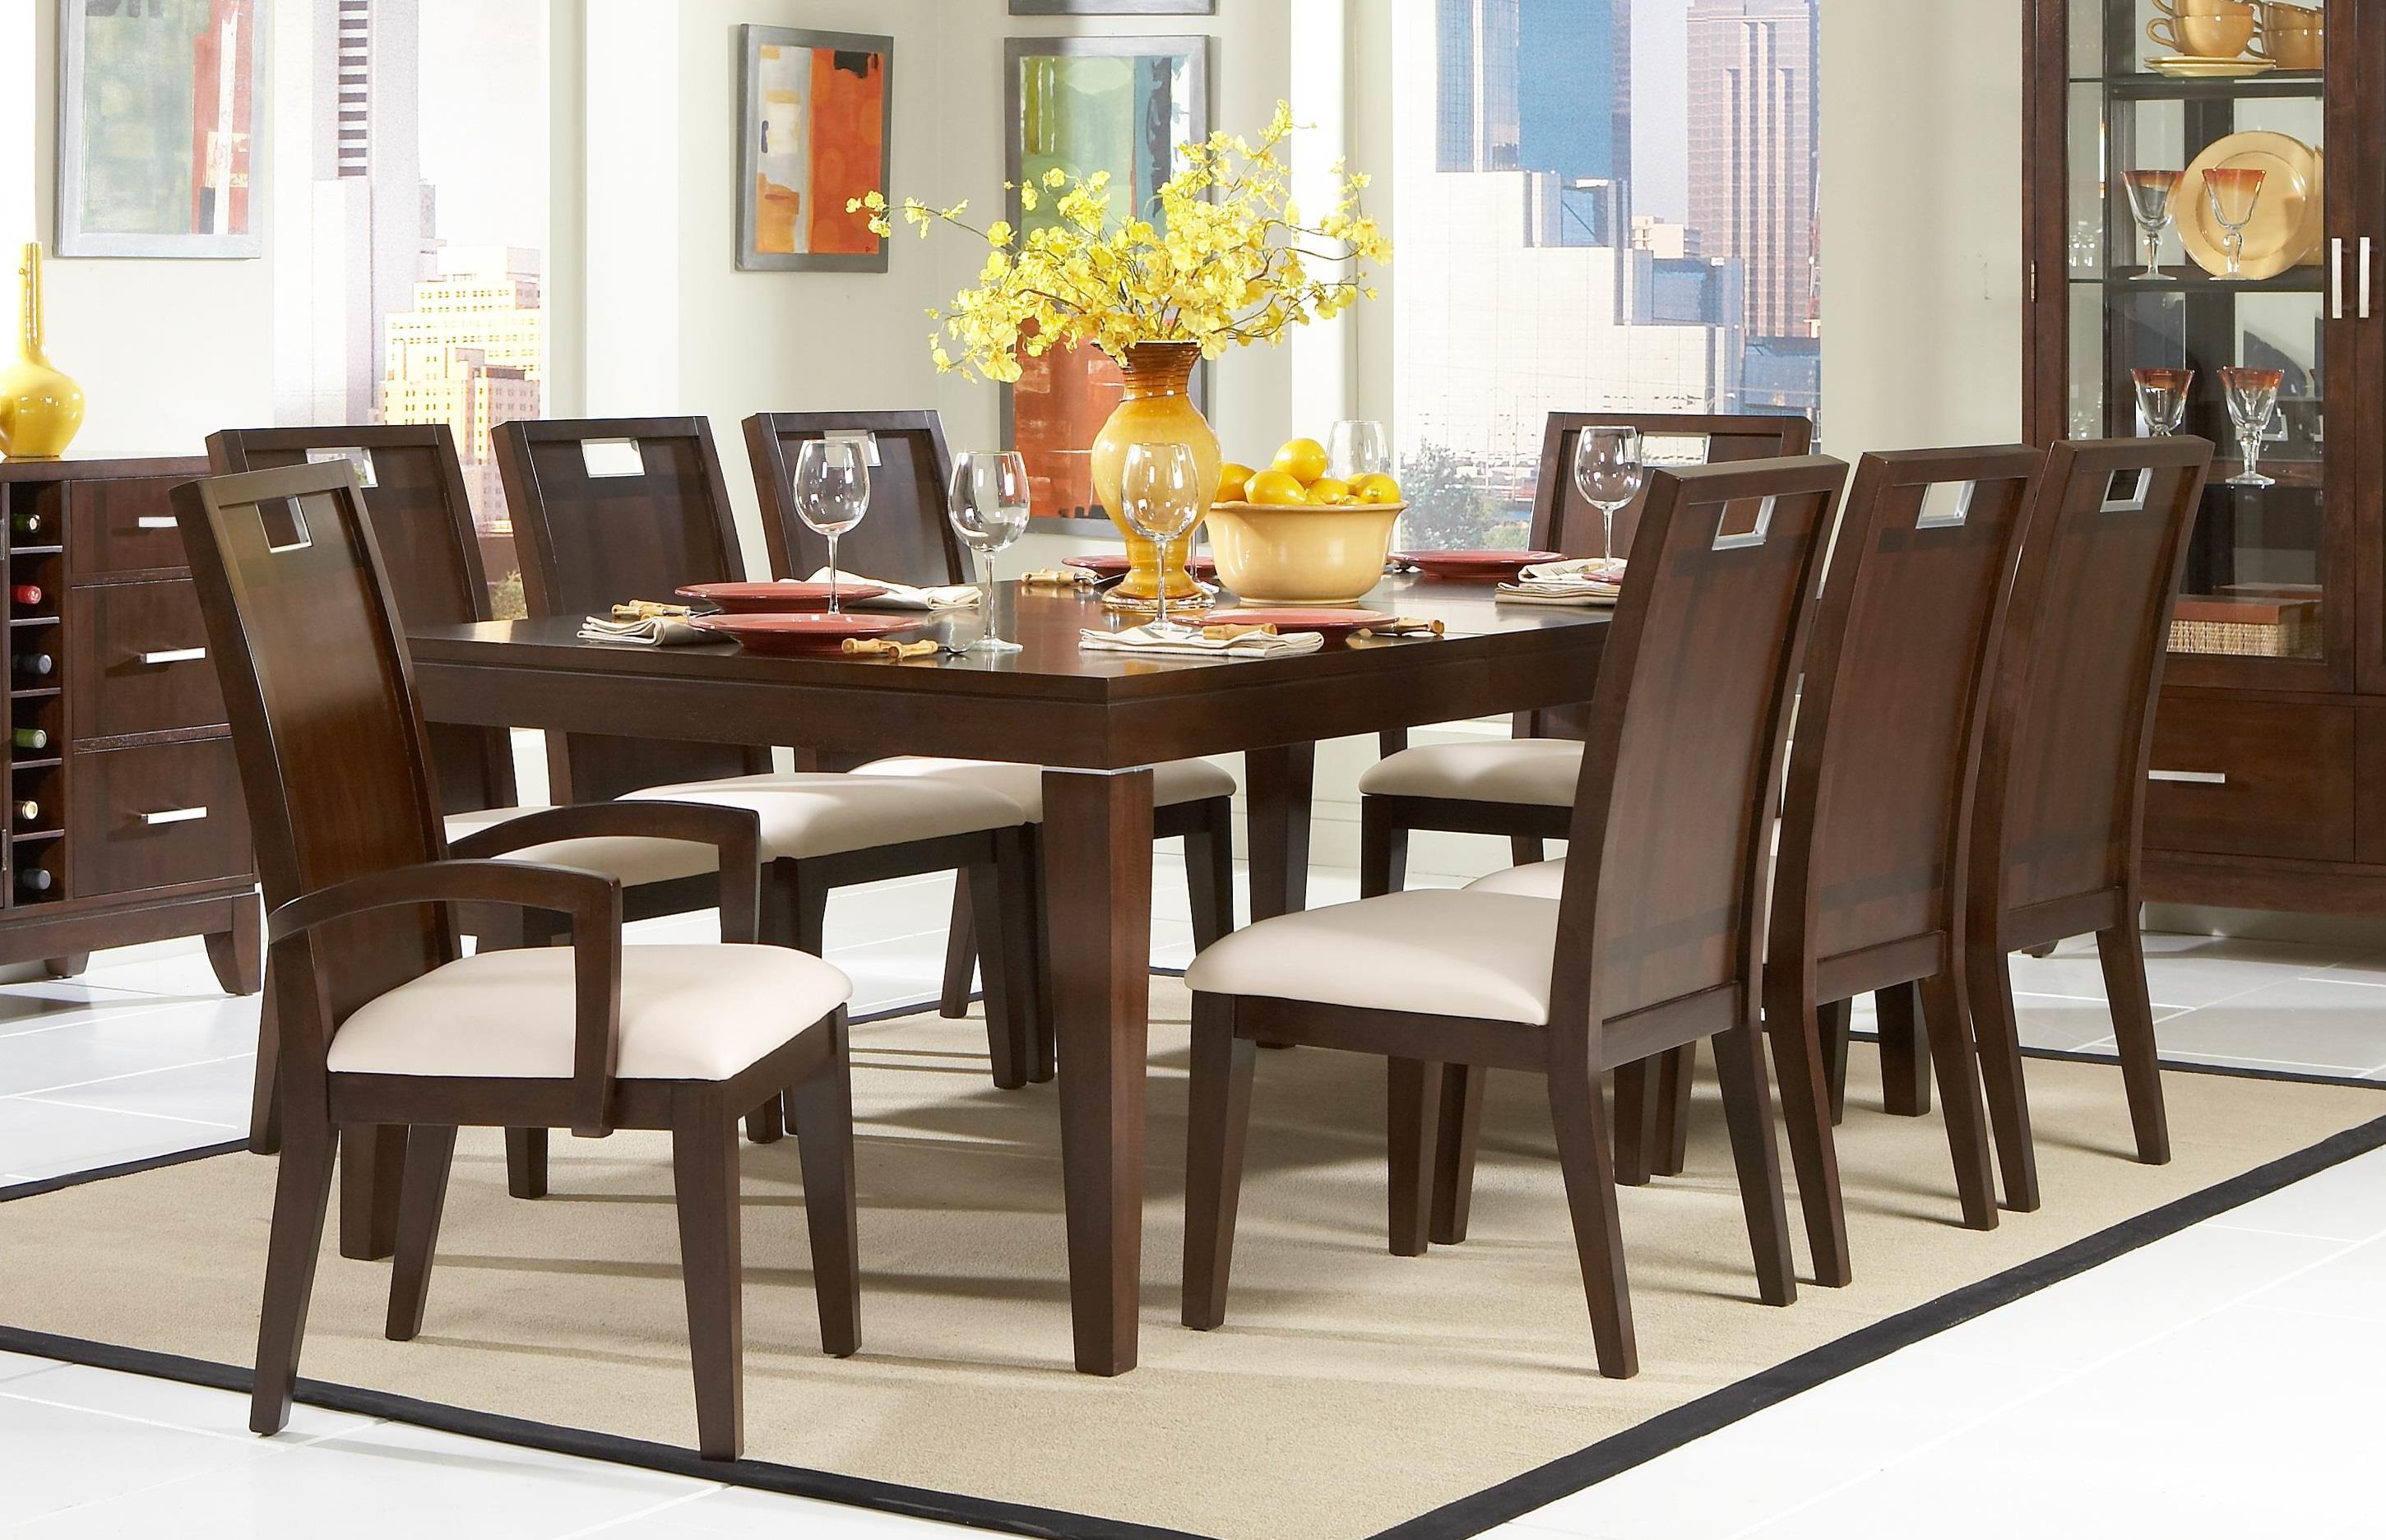 Interior : Decorative Modern Dining Table And Chairs Set 21 Room ...